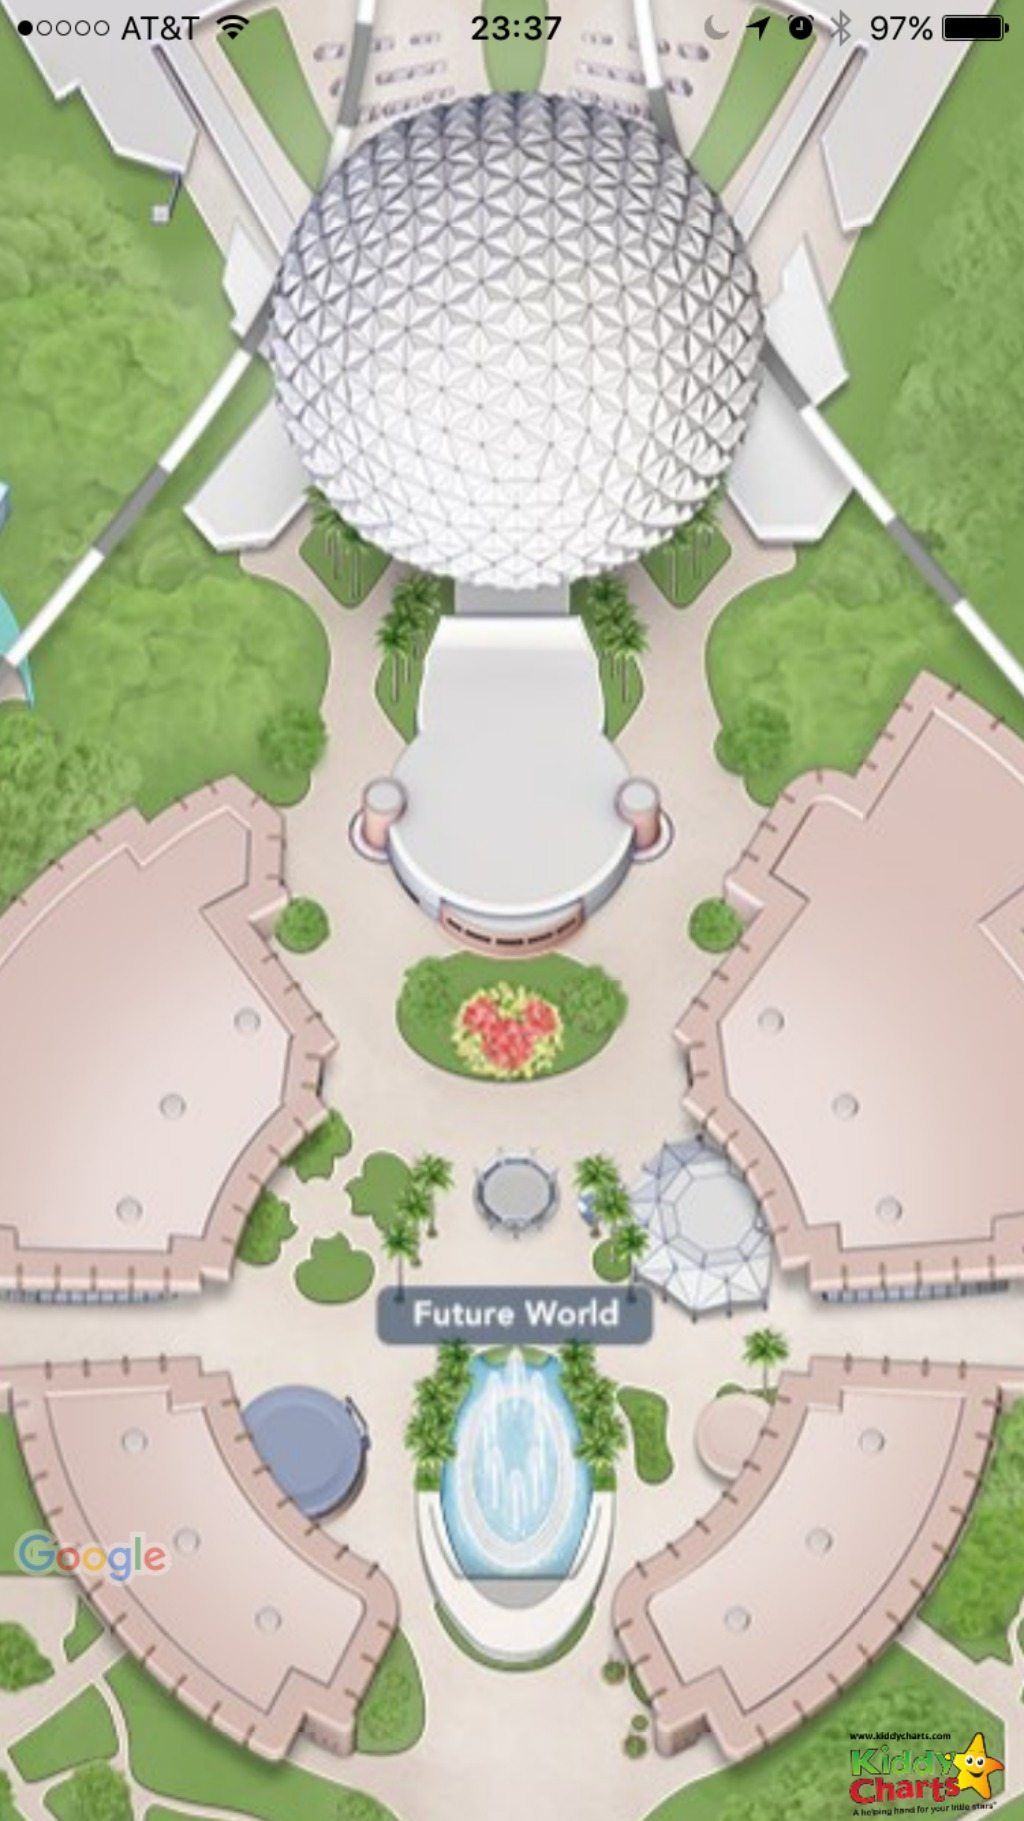 The Epcot map within the app is another location for one of our best hidden mickeys in Walt Disney World - look at the flower bed! Find others in the article - you'll love looking we promise!